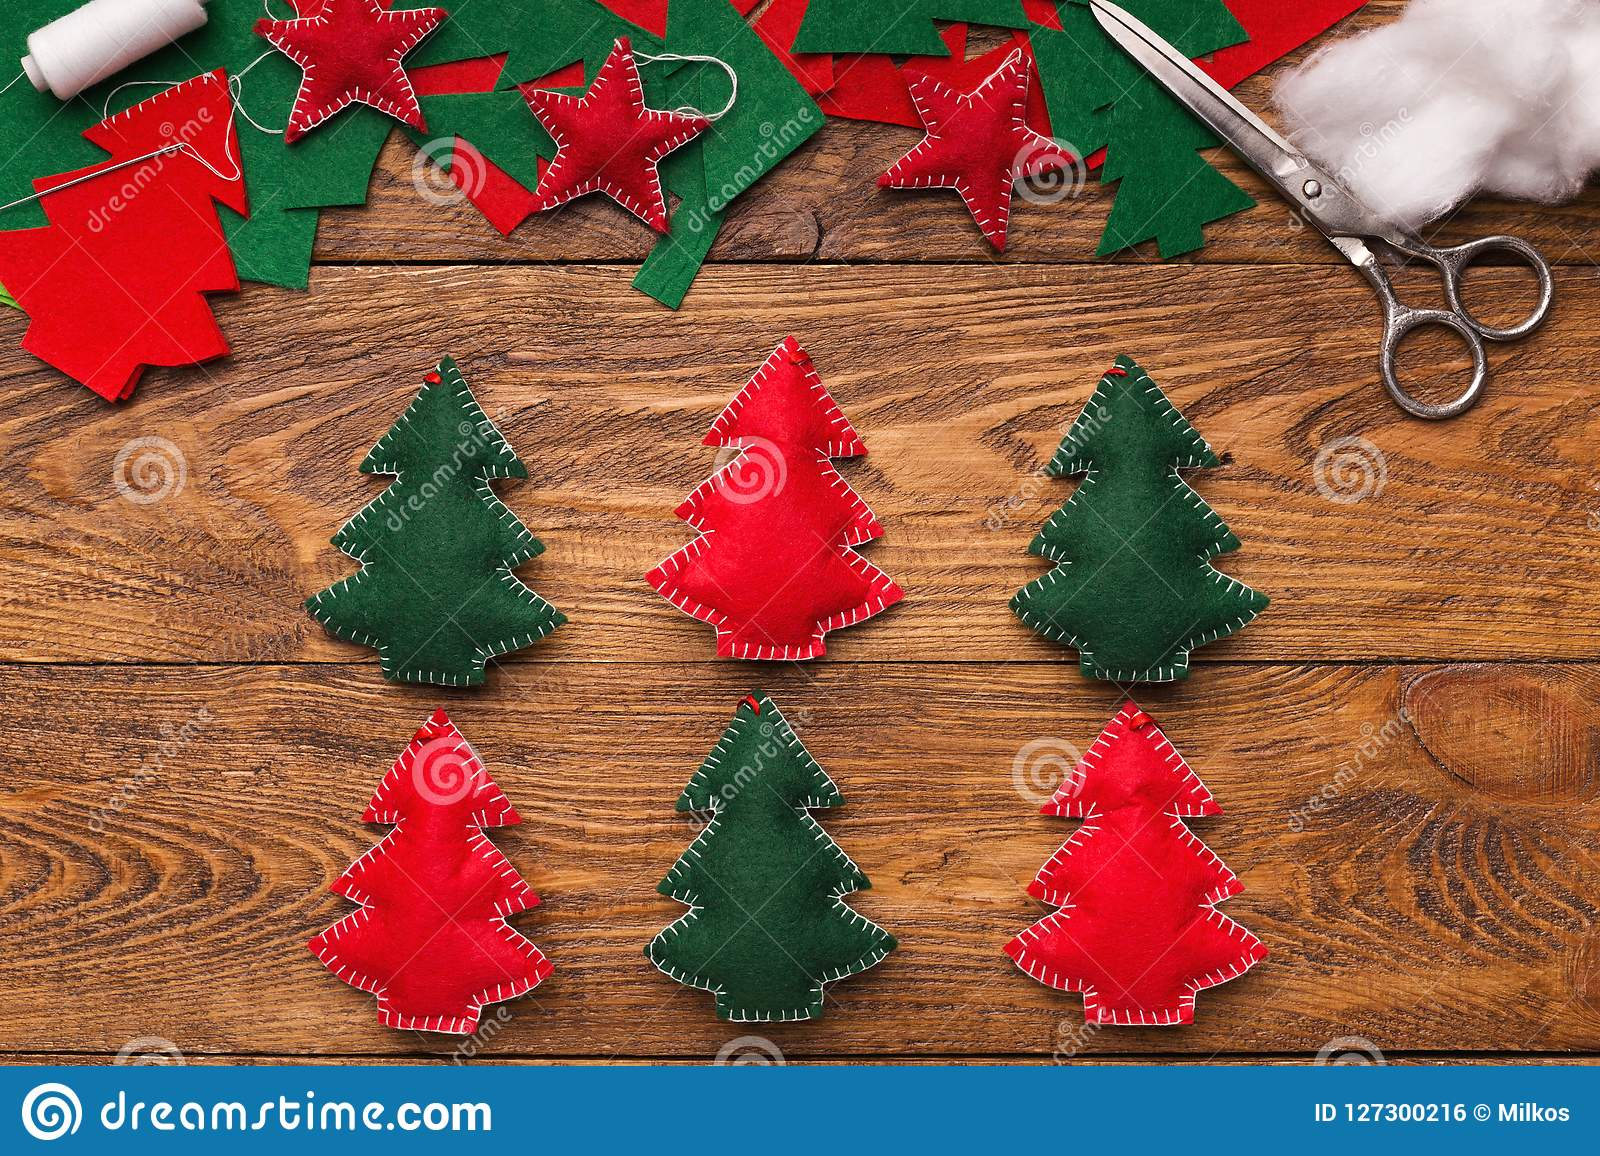 Handmade Christmas Decorations Diy Project For Holidays